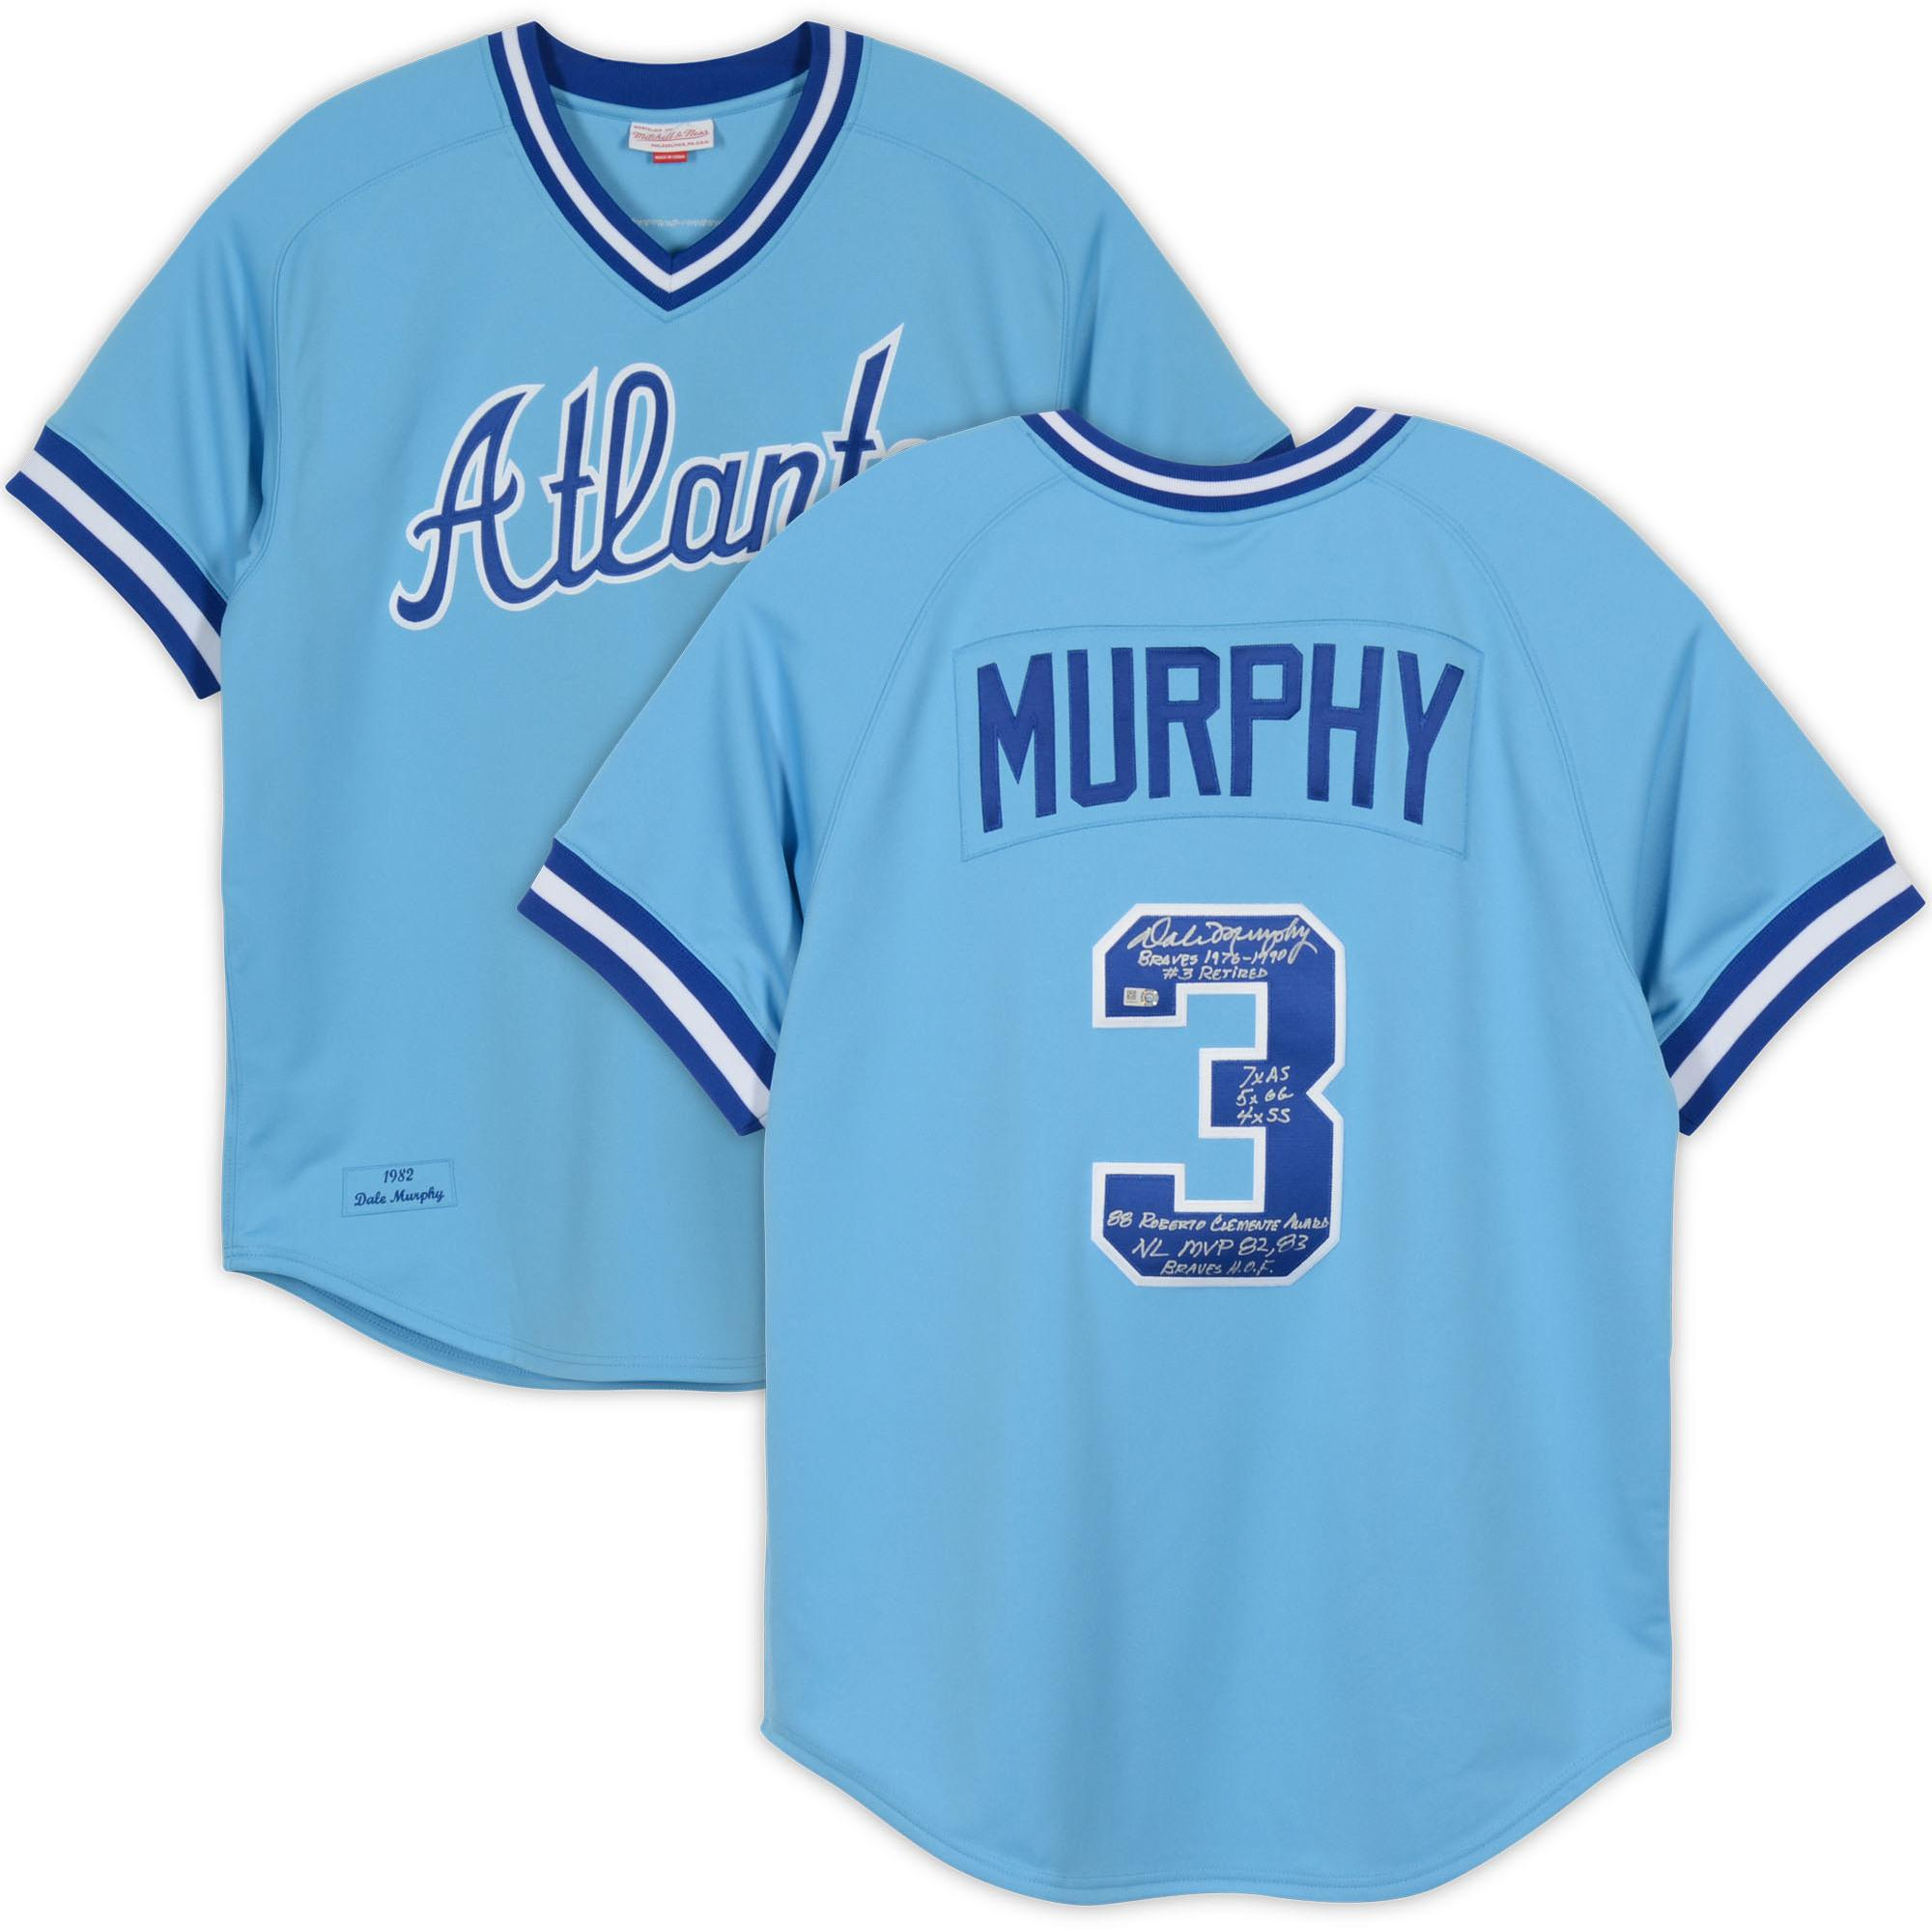 Dale Murphy Atlanta Braves Autographed Mitchell and Ness Powder Blue Authentic Jersey with Multiple Inscriptions - #1 Limited Edition of 12 - Fanatics Authentic Certified